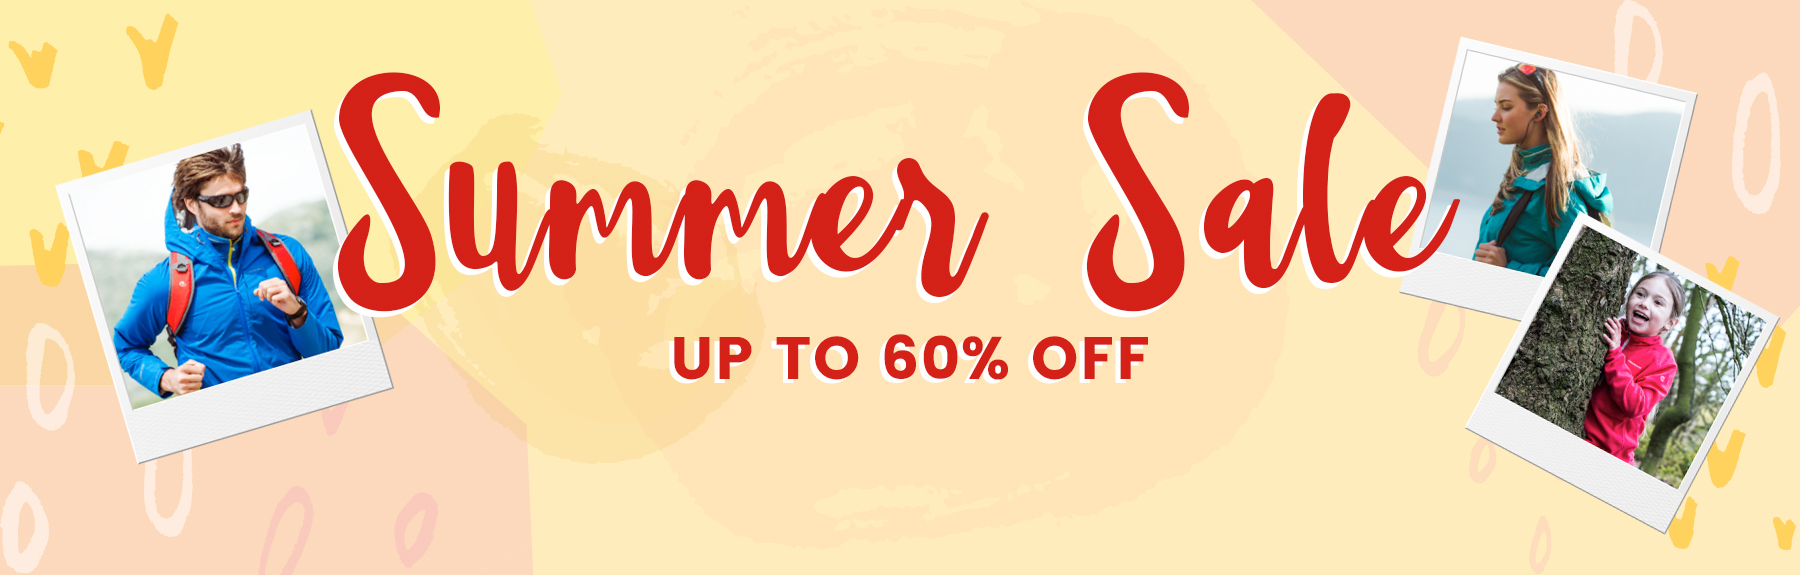 Hawkshead: Summer Sale up to 60% off family outdoor outfitters